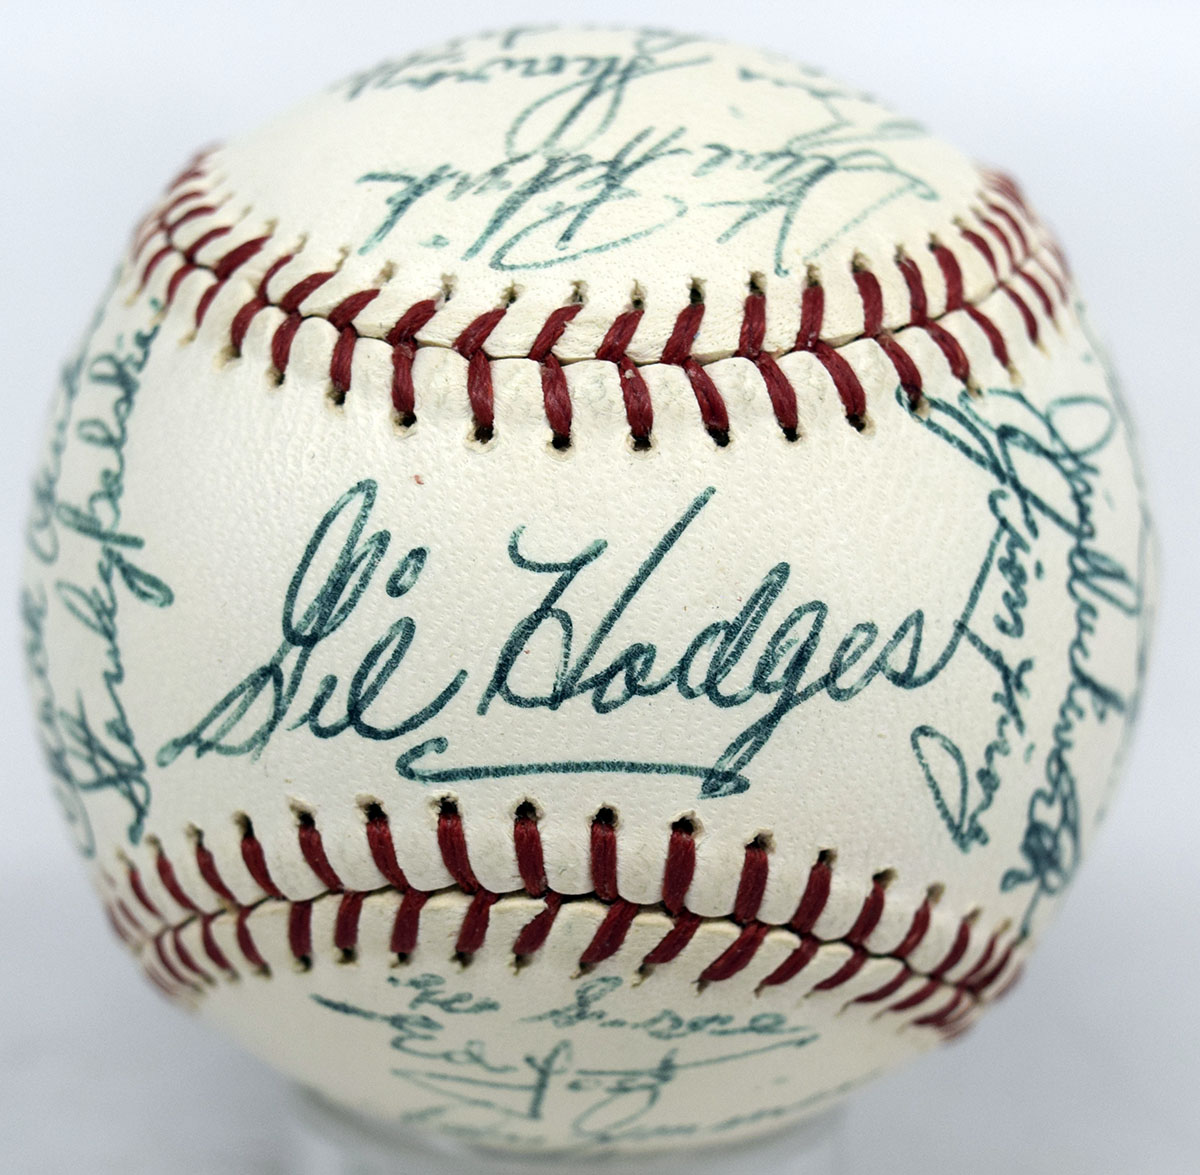 A team ball from the 1964 Washington Senators being offered by Clean Sweep Auctions.